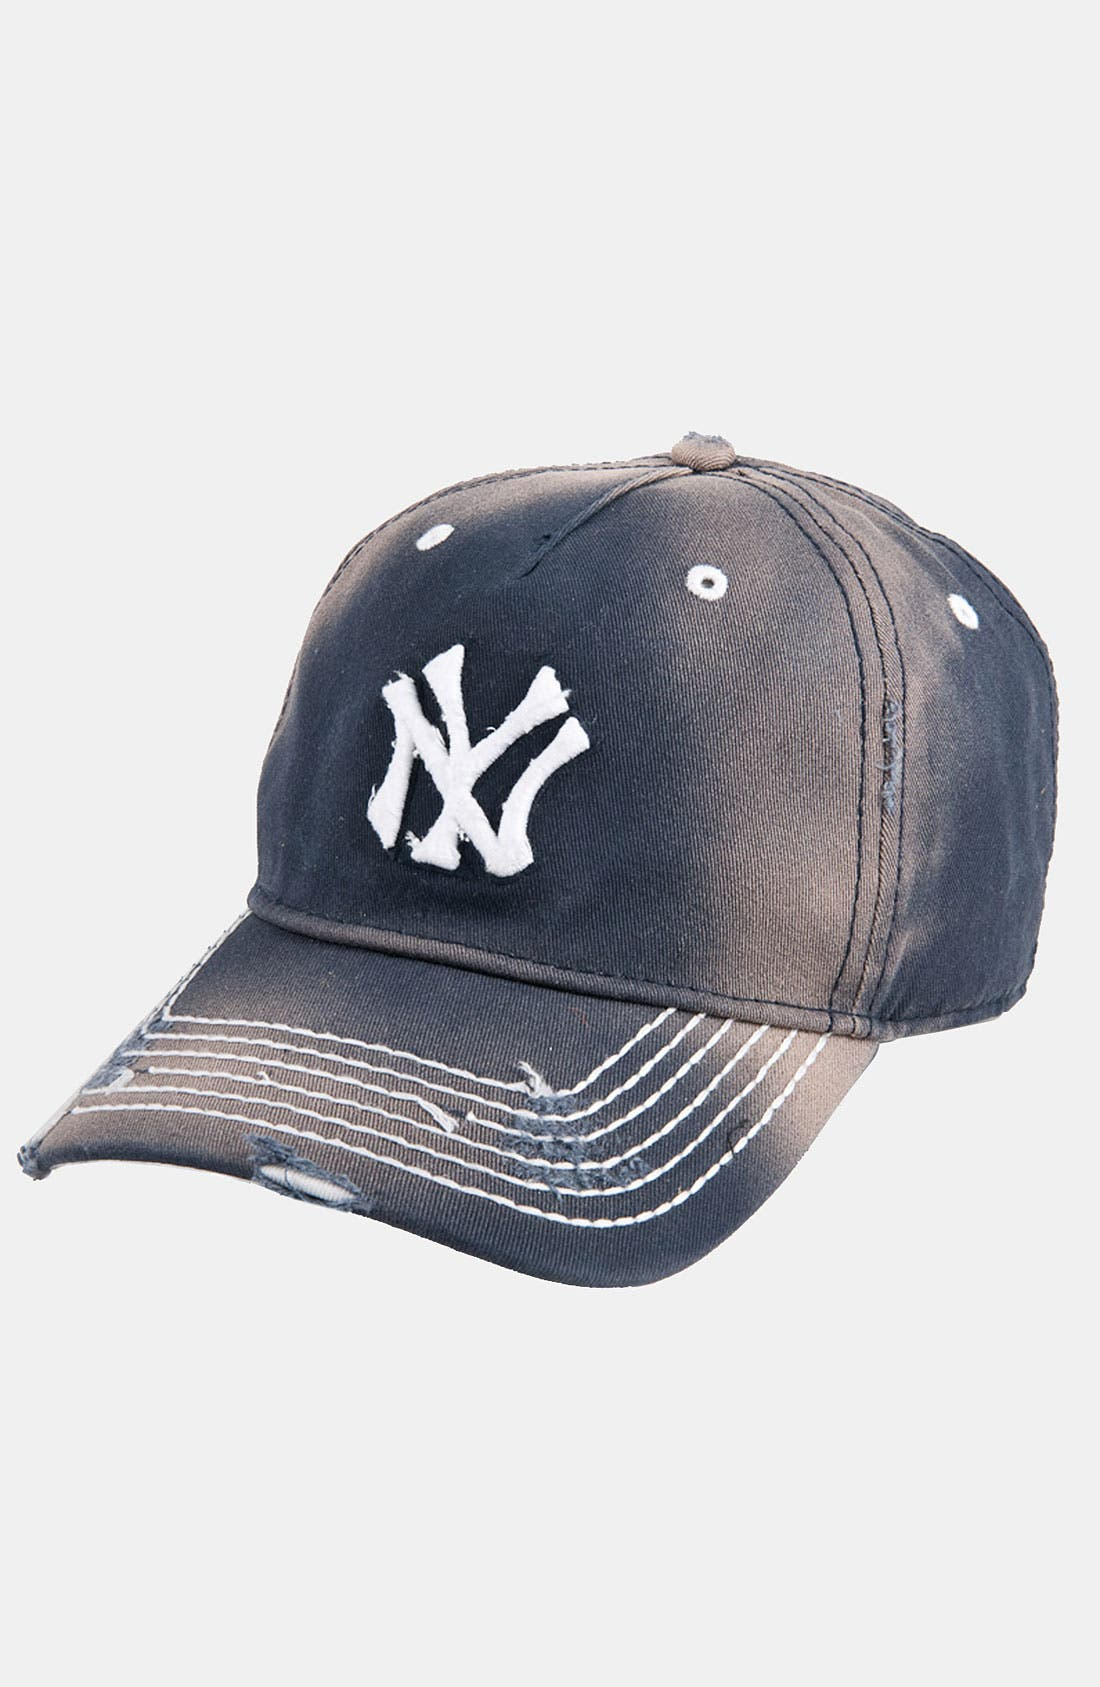 Alternate Image 1 Selected - American Needle 'New York Yankees' Distressed Cap